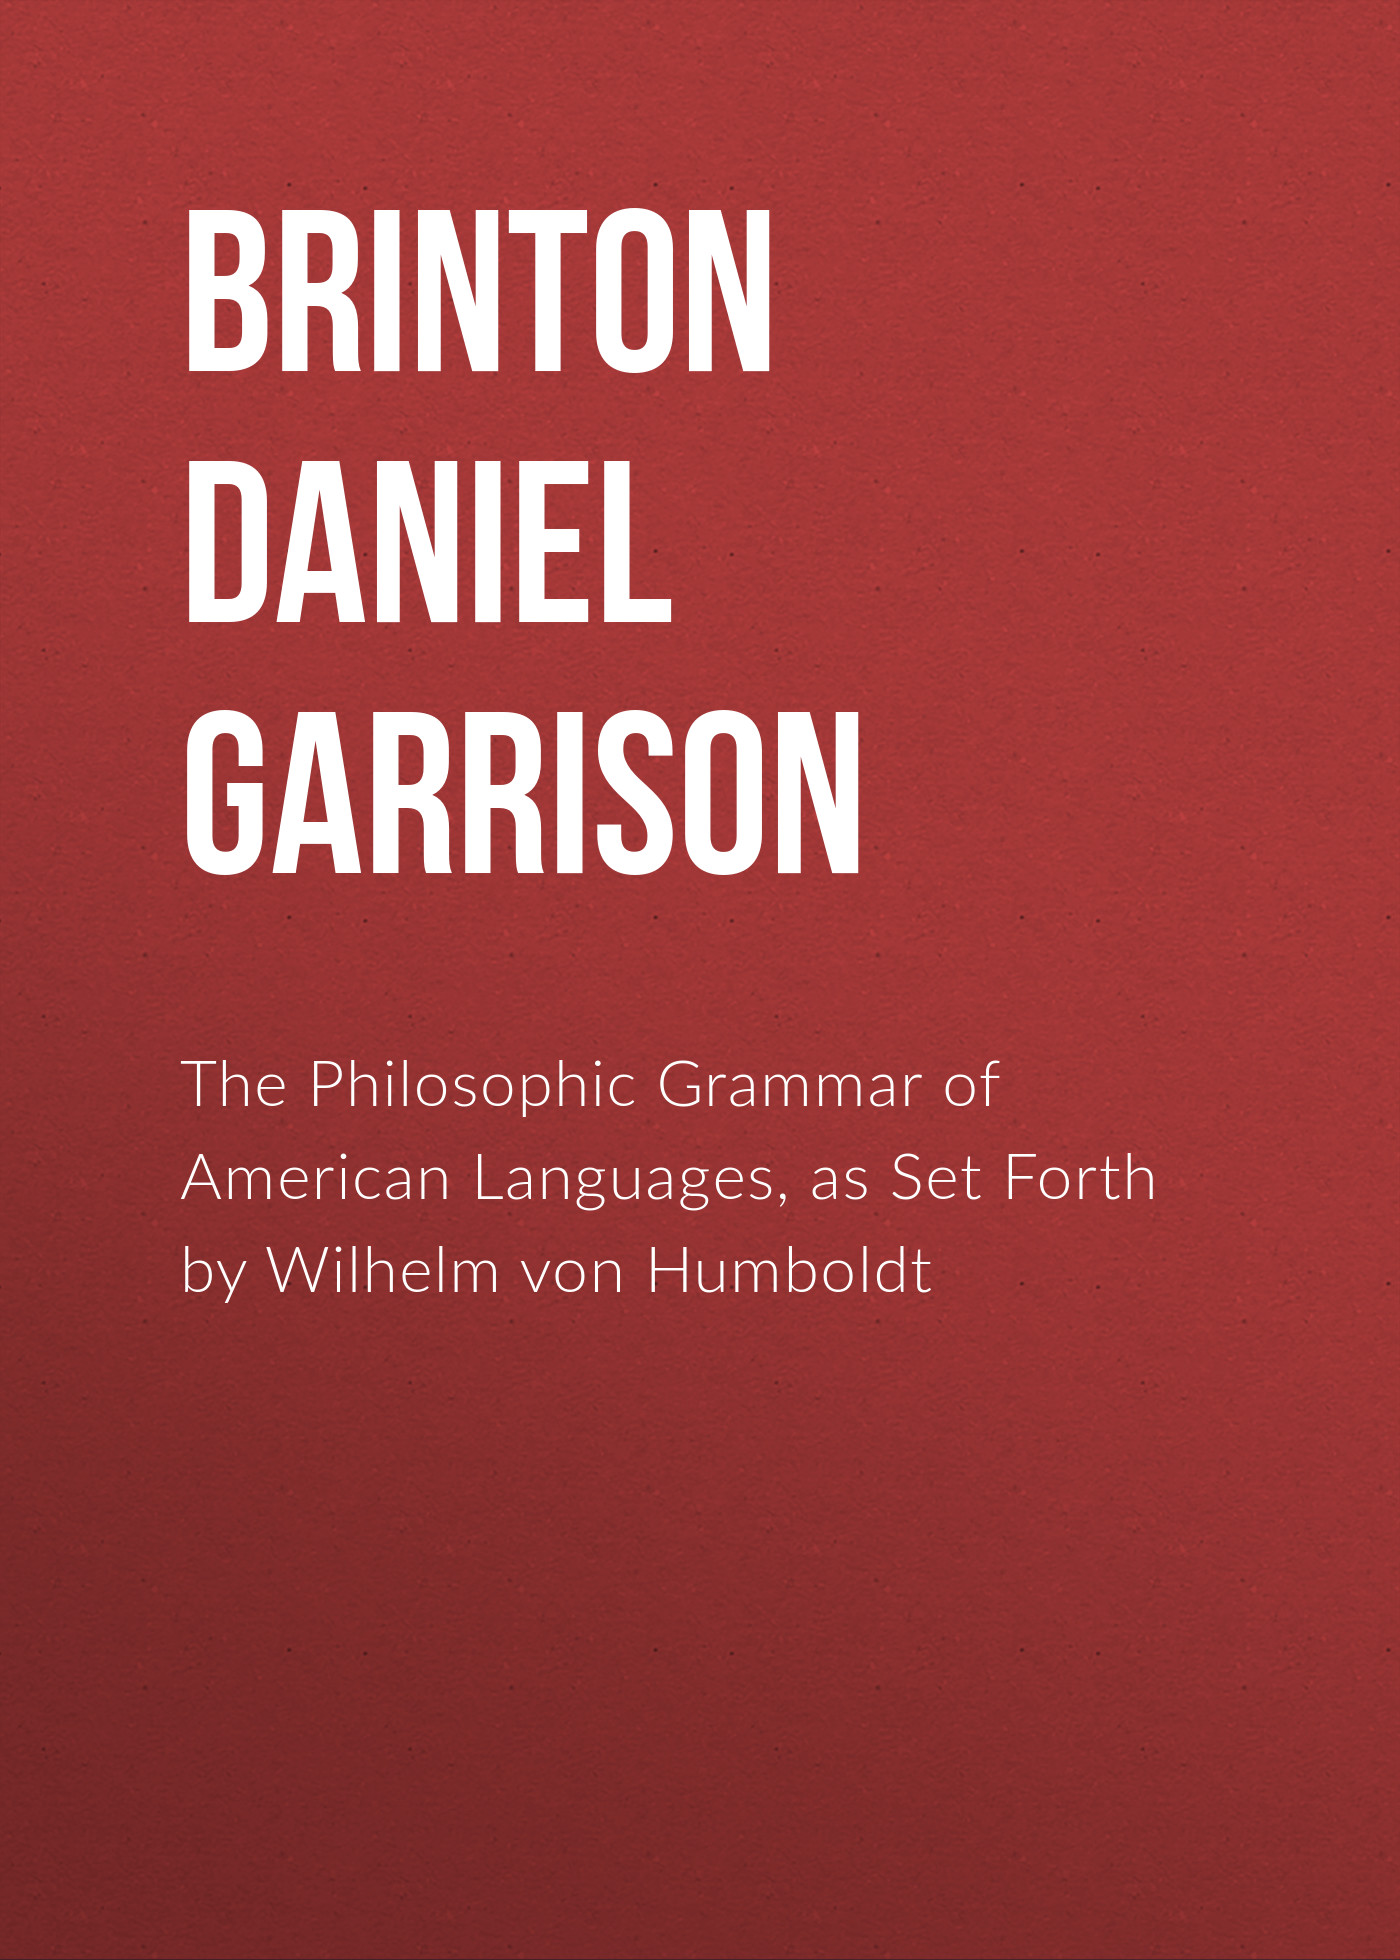 Brinton Daniel Garrison The Philosophic Grammar of American Languages, as Set Forth by Wilhelm von Humboldt caroline friederike von humboldt wilhelm und caroline von humboldt in ihren briefen